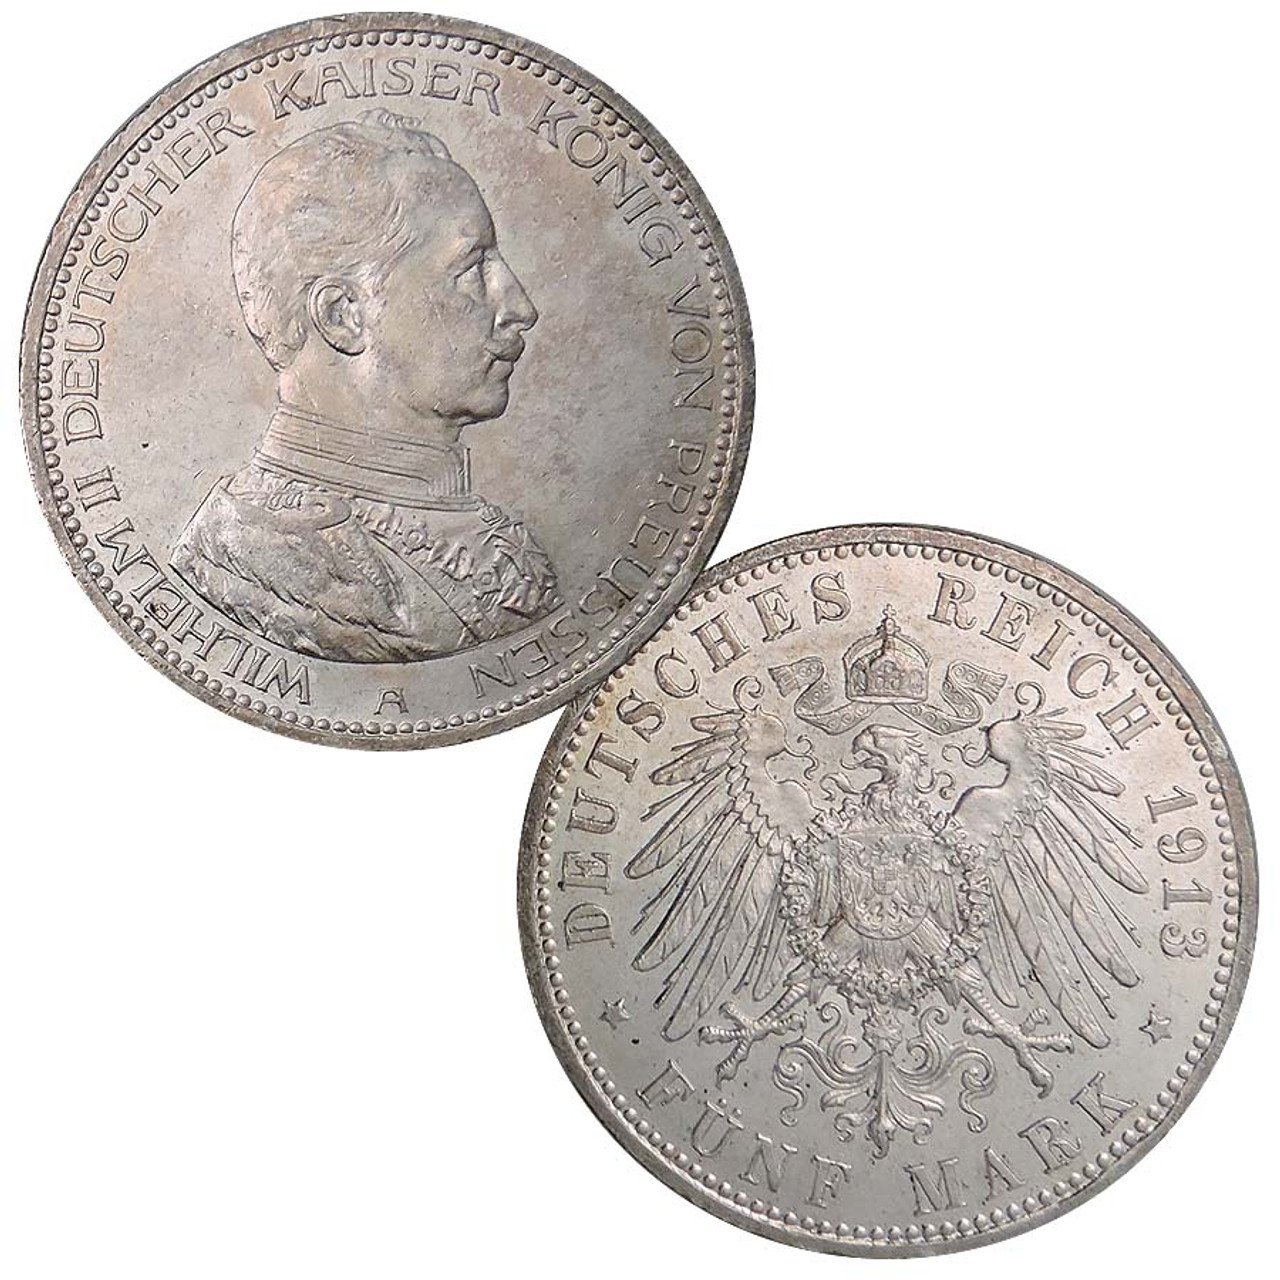 Prussia 1913 or 1914 Silver Jubilee of Wilhelm II 5 Mark Extra Fine to About Uncirculated Image 1